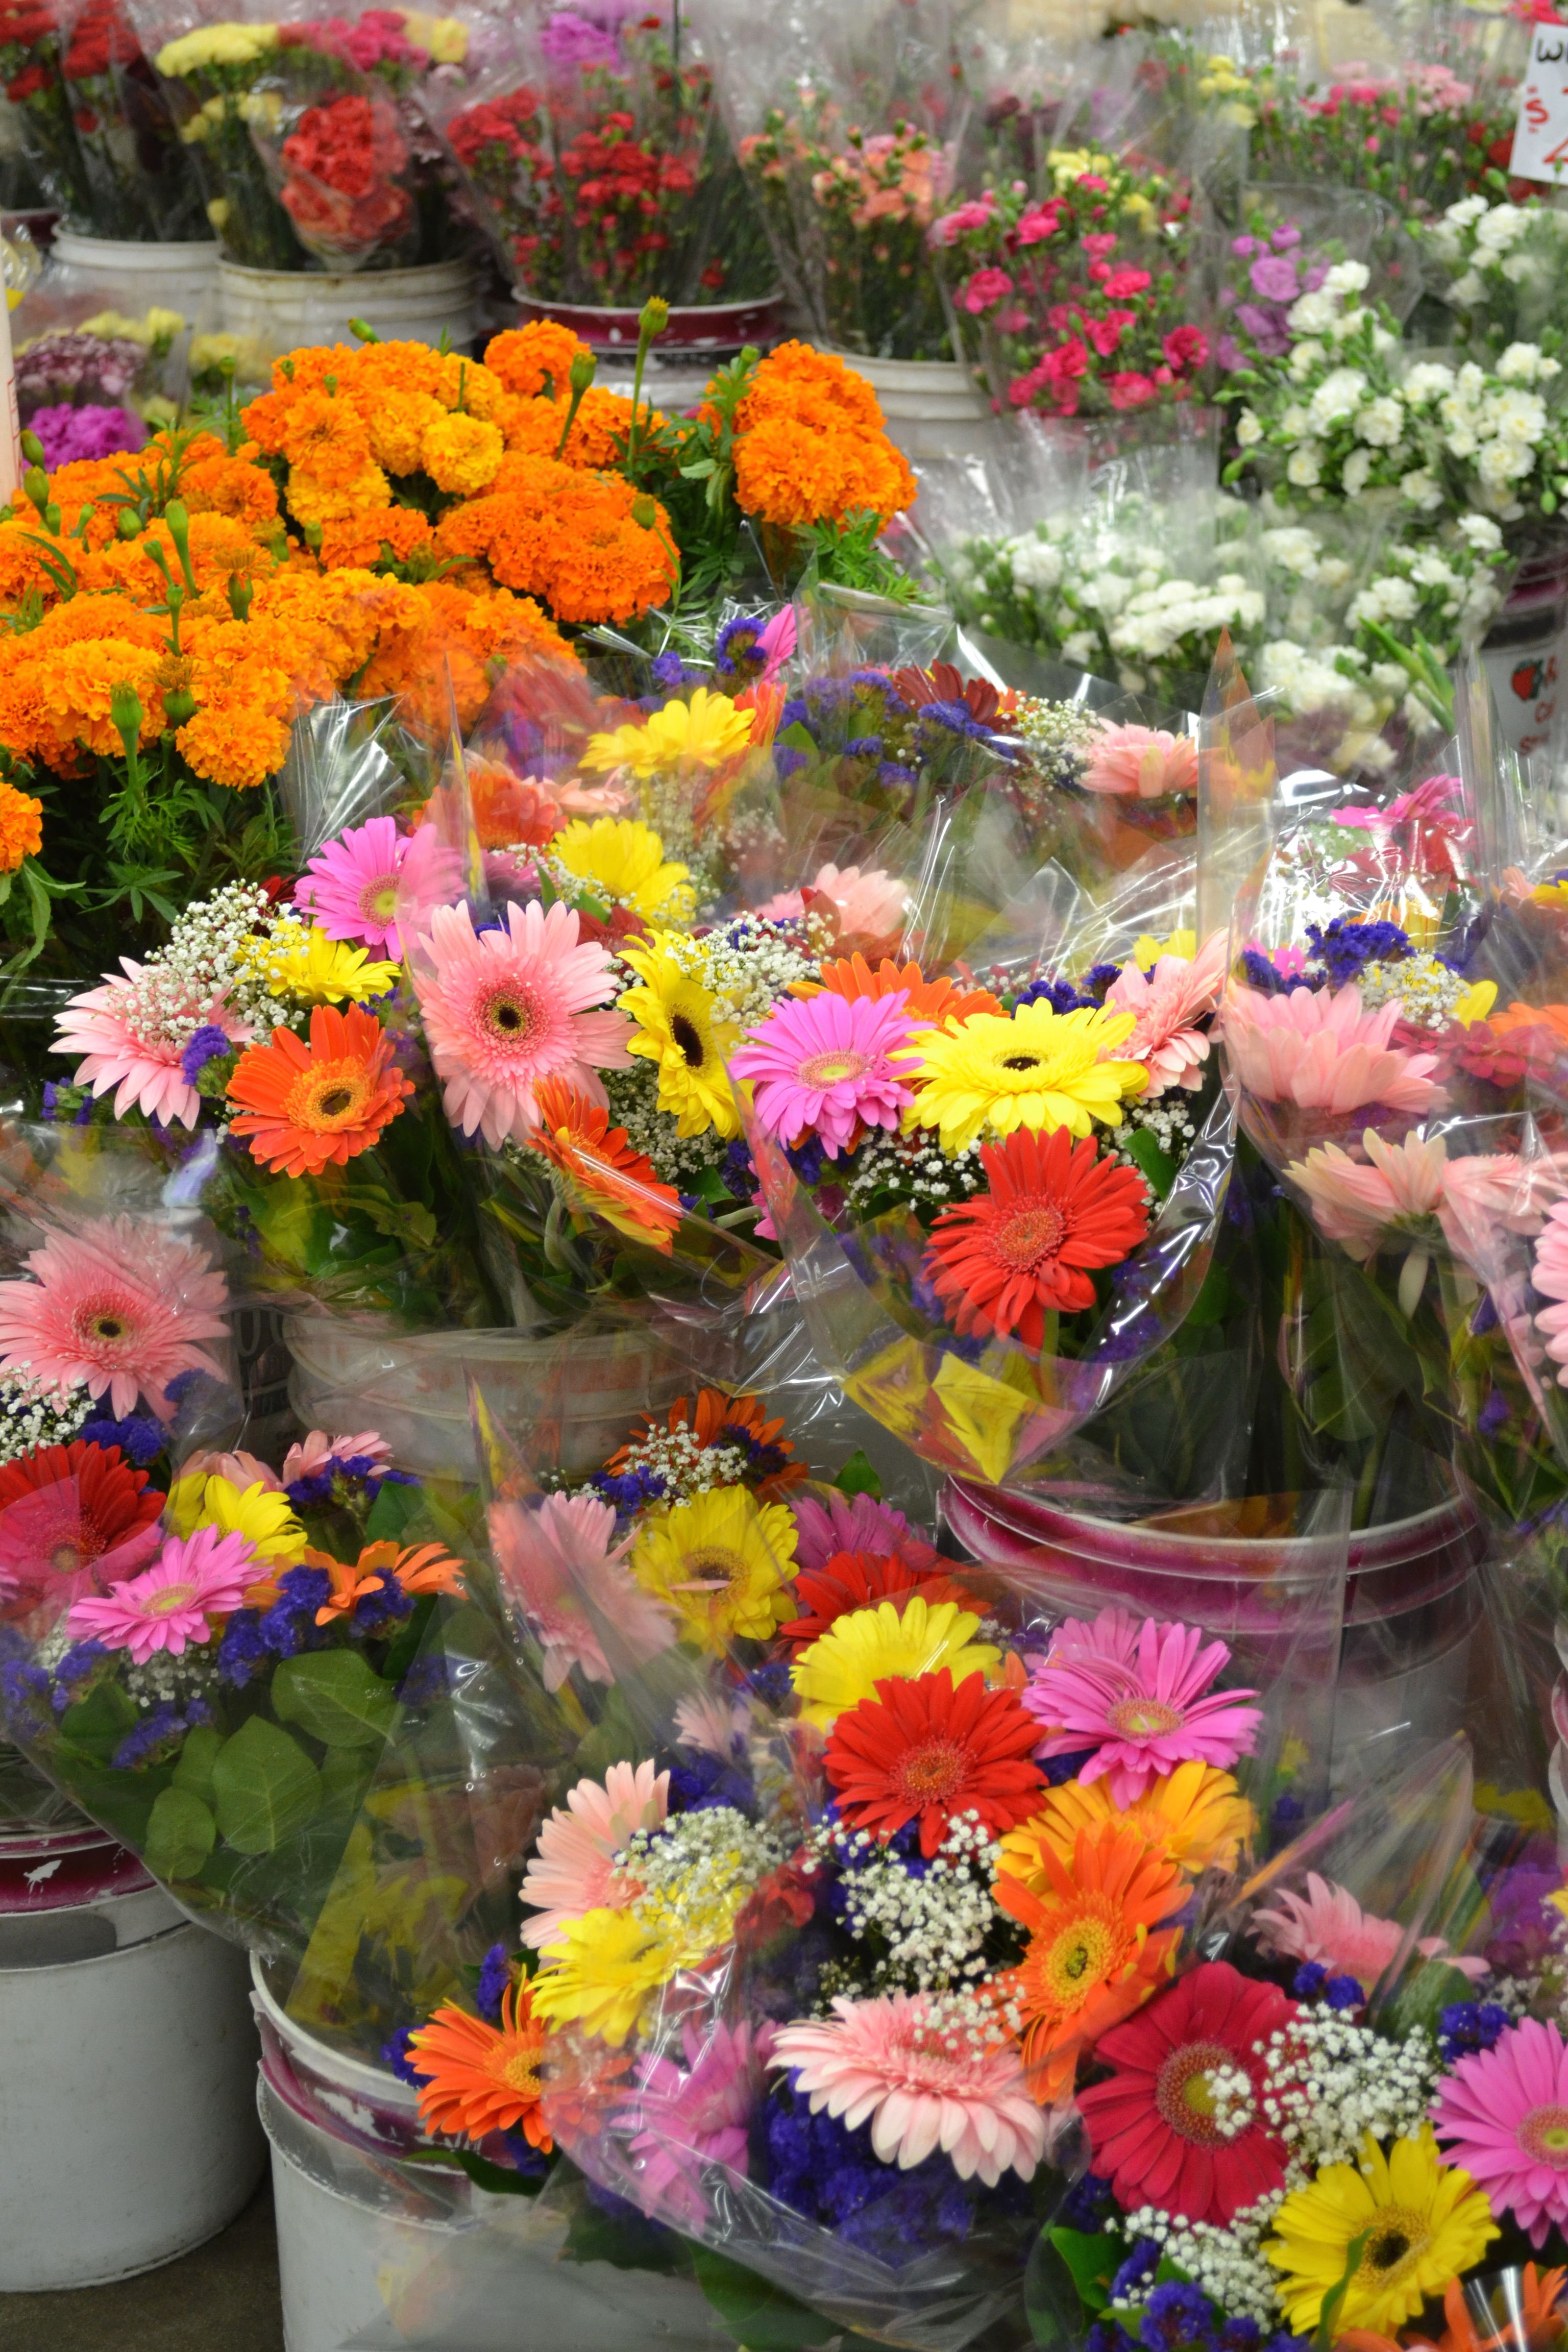 Yellow Pink And Orange Daisies With Baby S Breath Flowers Flower Market Bunch Of Flowers